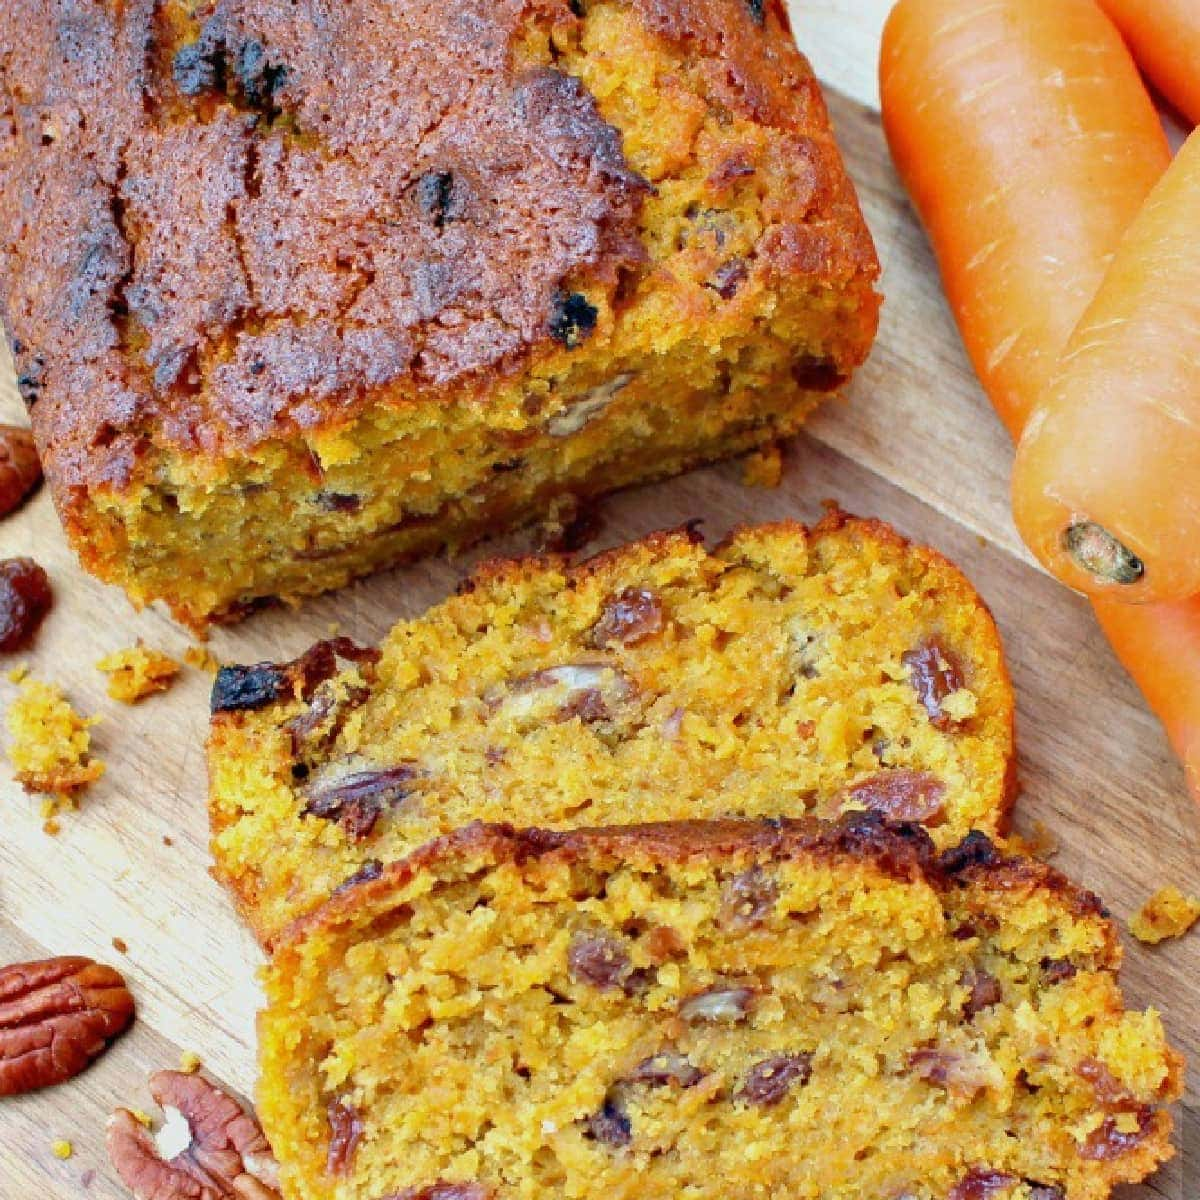 Spiced Pecan Carrot Cake! This has got to be the World's best carrot cake. Fluffy, soft and bursting with the flavors of Fall! Perfect for Thanksgiving, Christmas holidays! #Cake #Thanksgiving #Christmas #Easter #Fall #Carrotcake #Winter